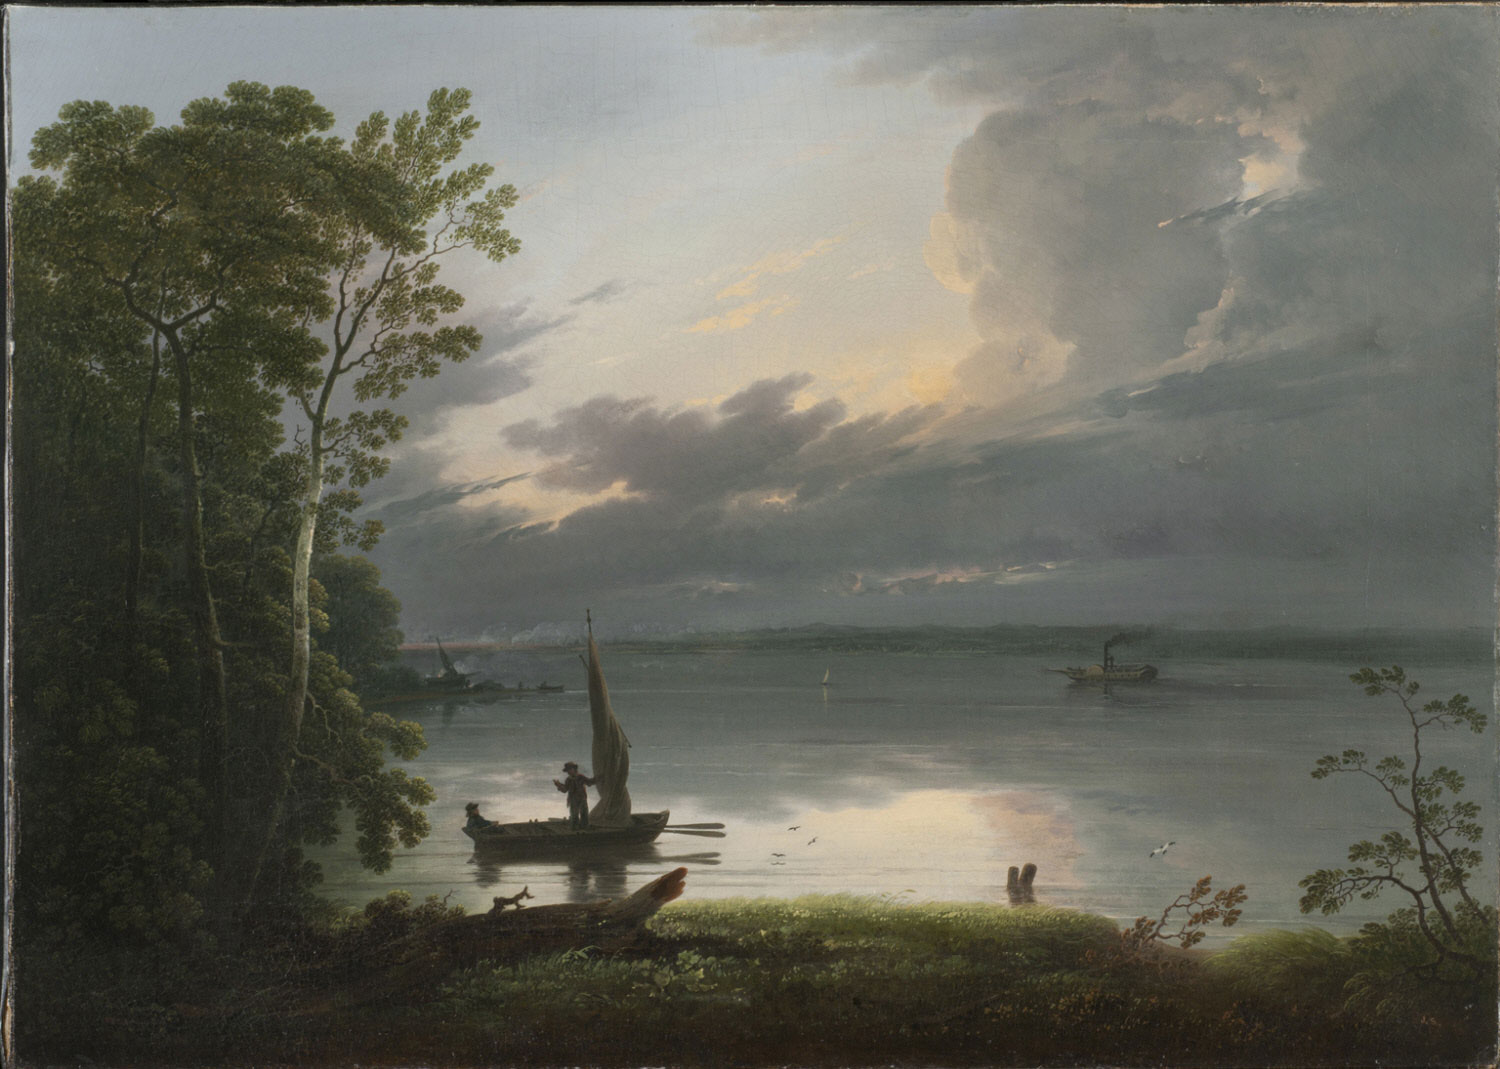 Night Scene (River Scene with Steamboat)